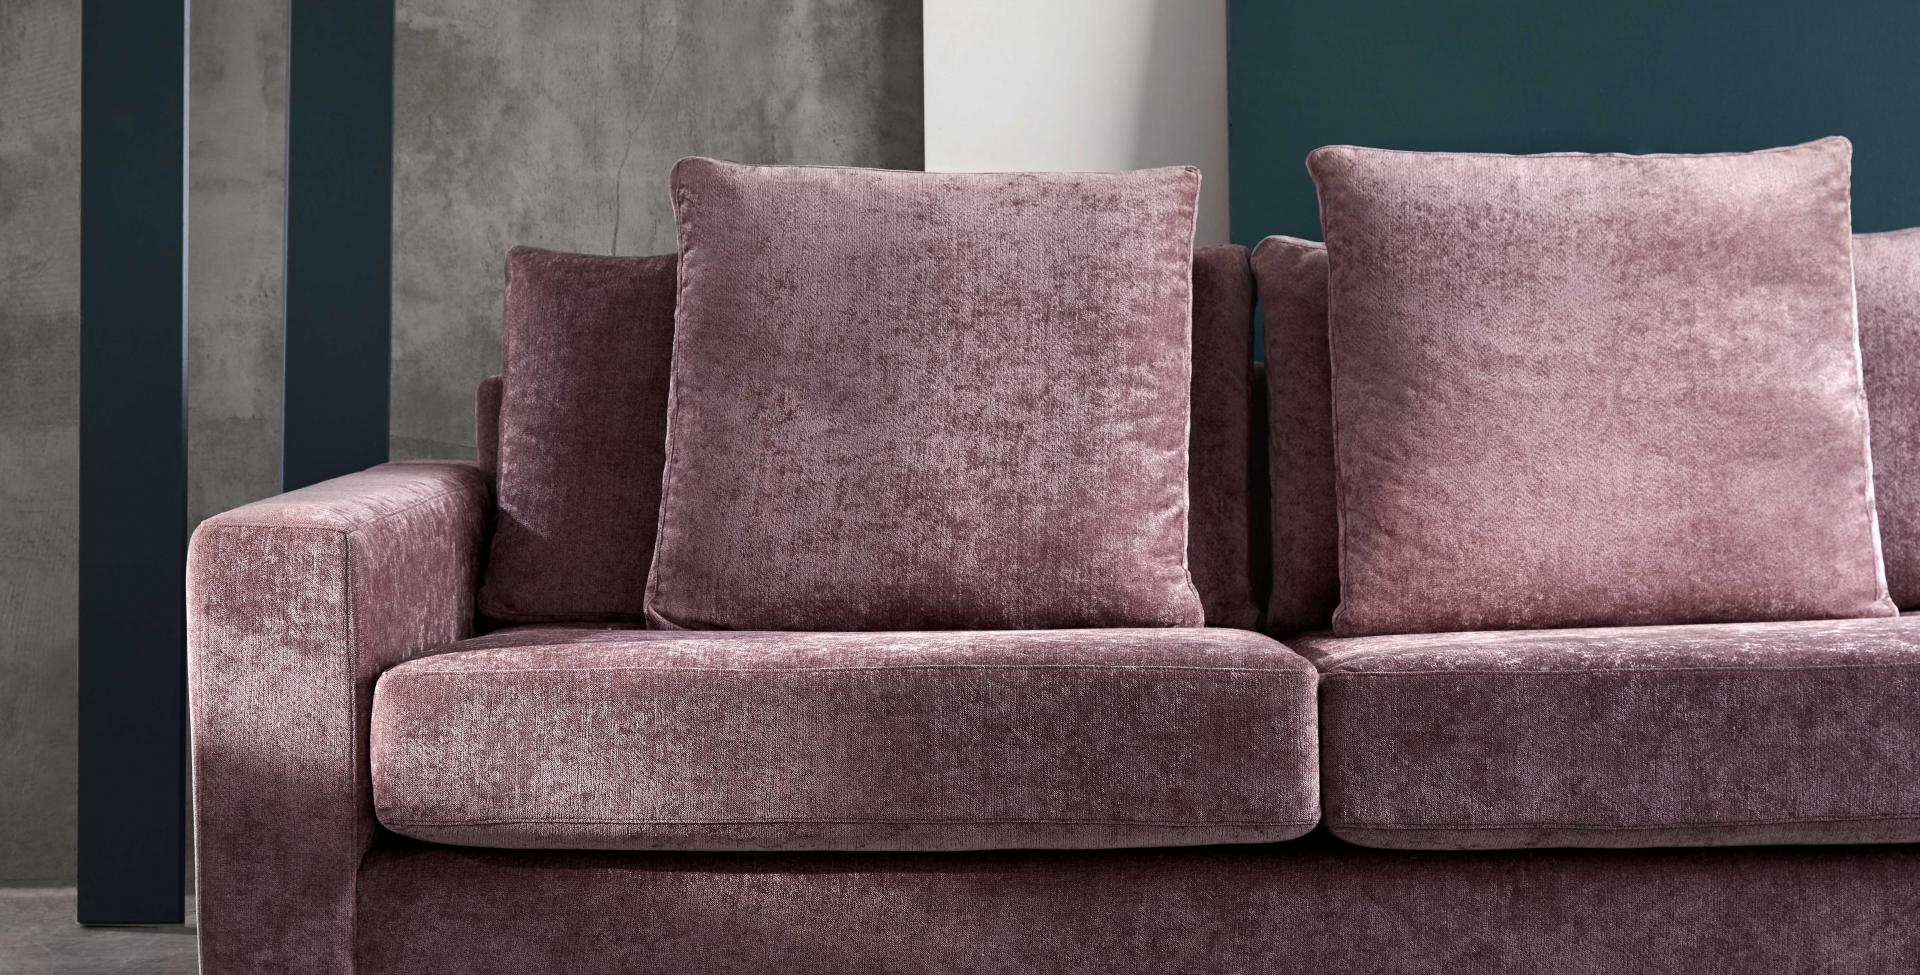 Romano | Romano manufactures contemporary upholstered ...